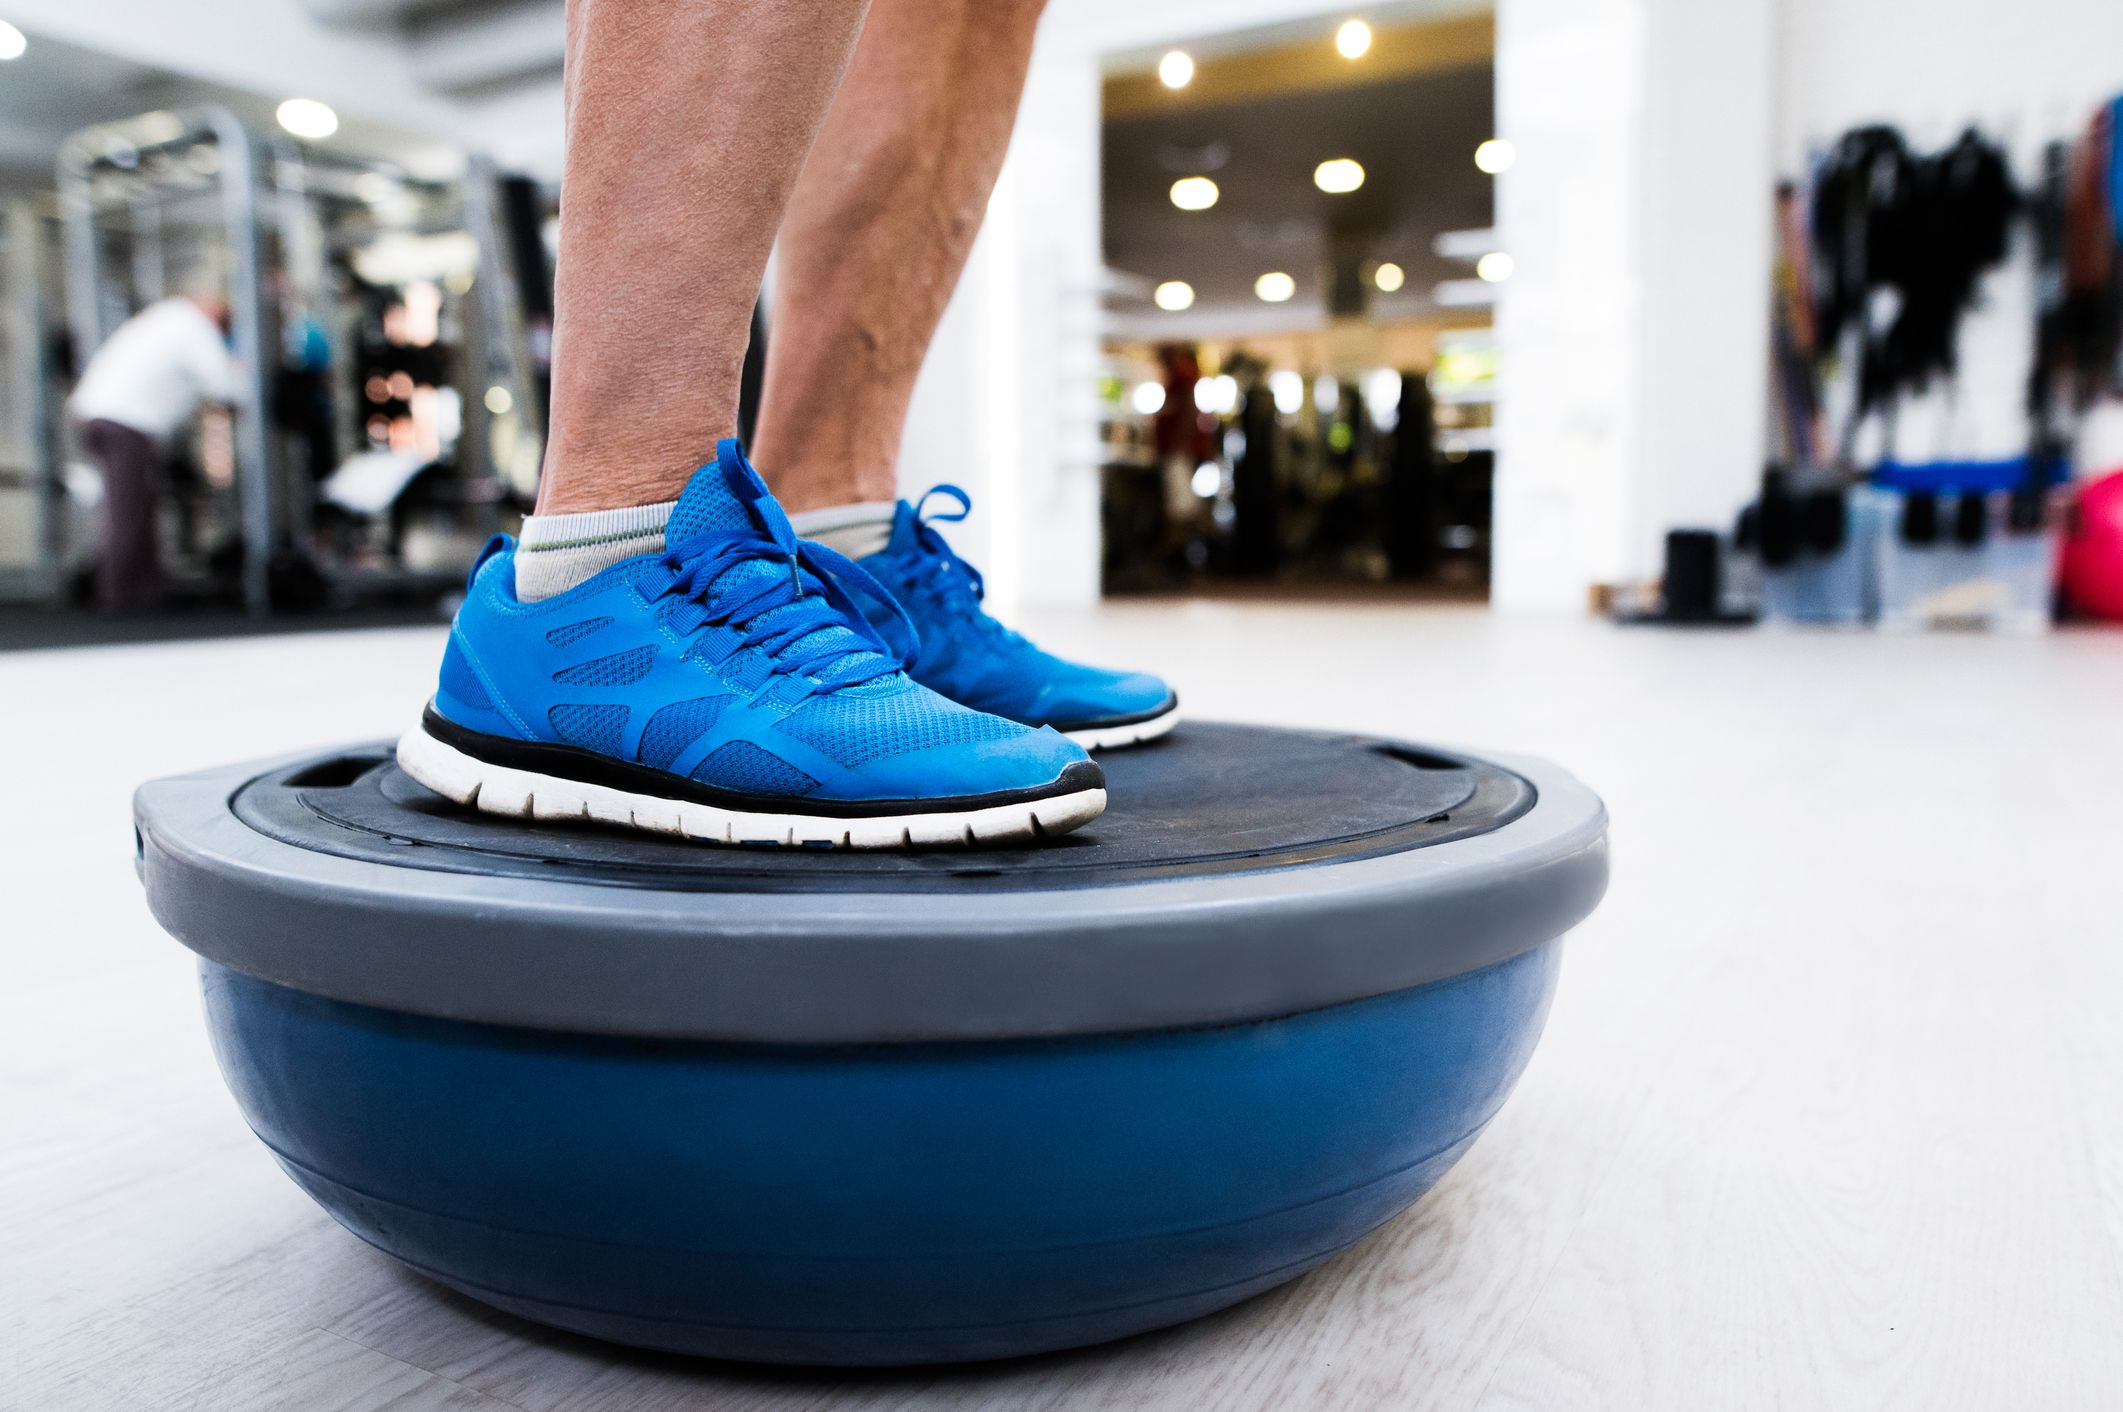 BOSU Balance Trainer and How to Use It